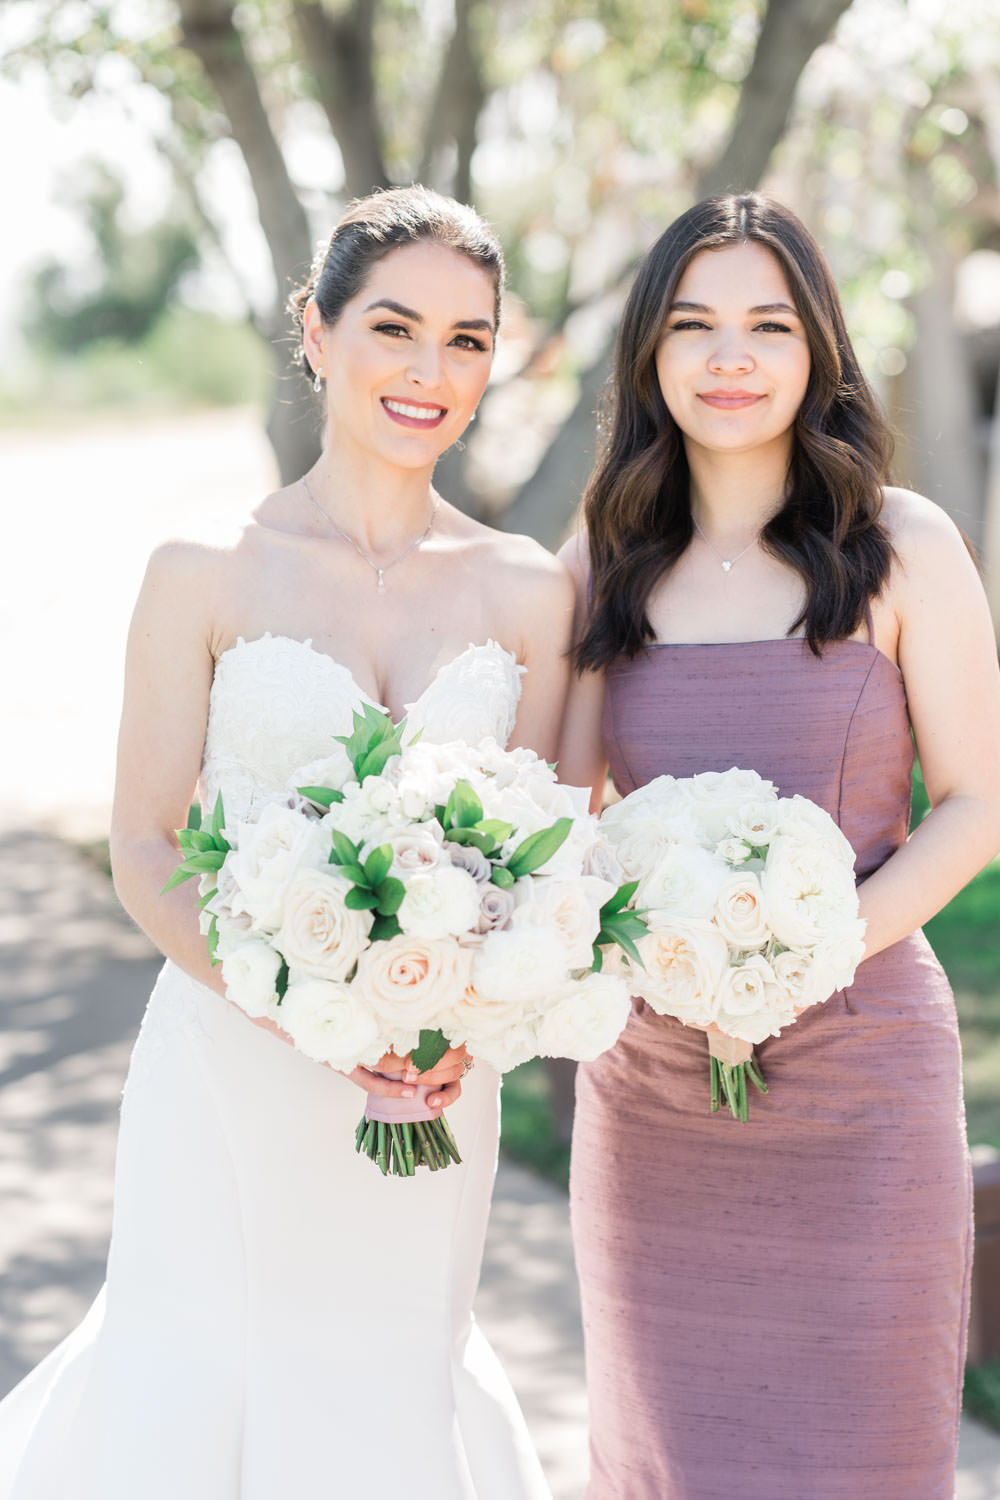 Bride with white and green bouquet with bridesmaid in mauve purple gown, Santalux Club wedding reception, Cavin Elizabeth Photography